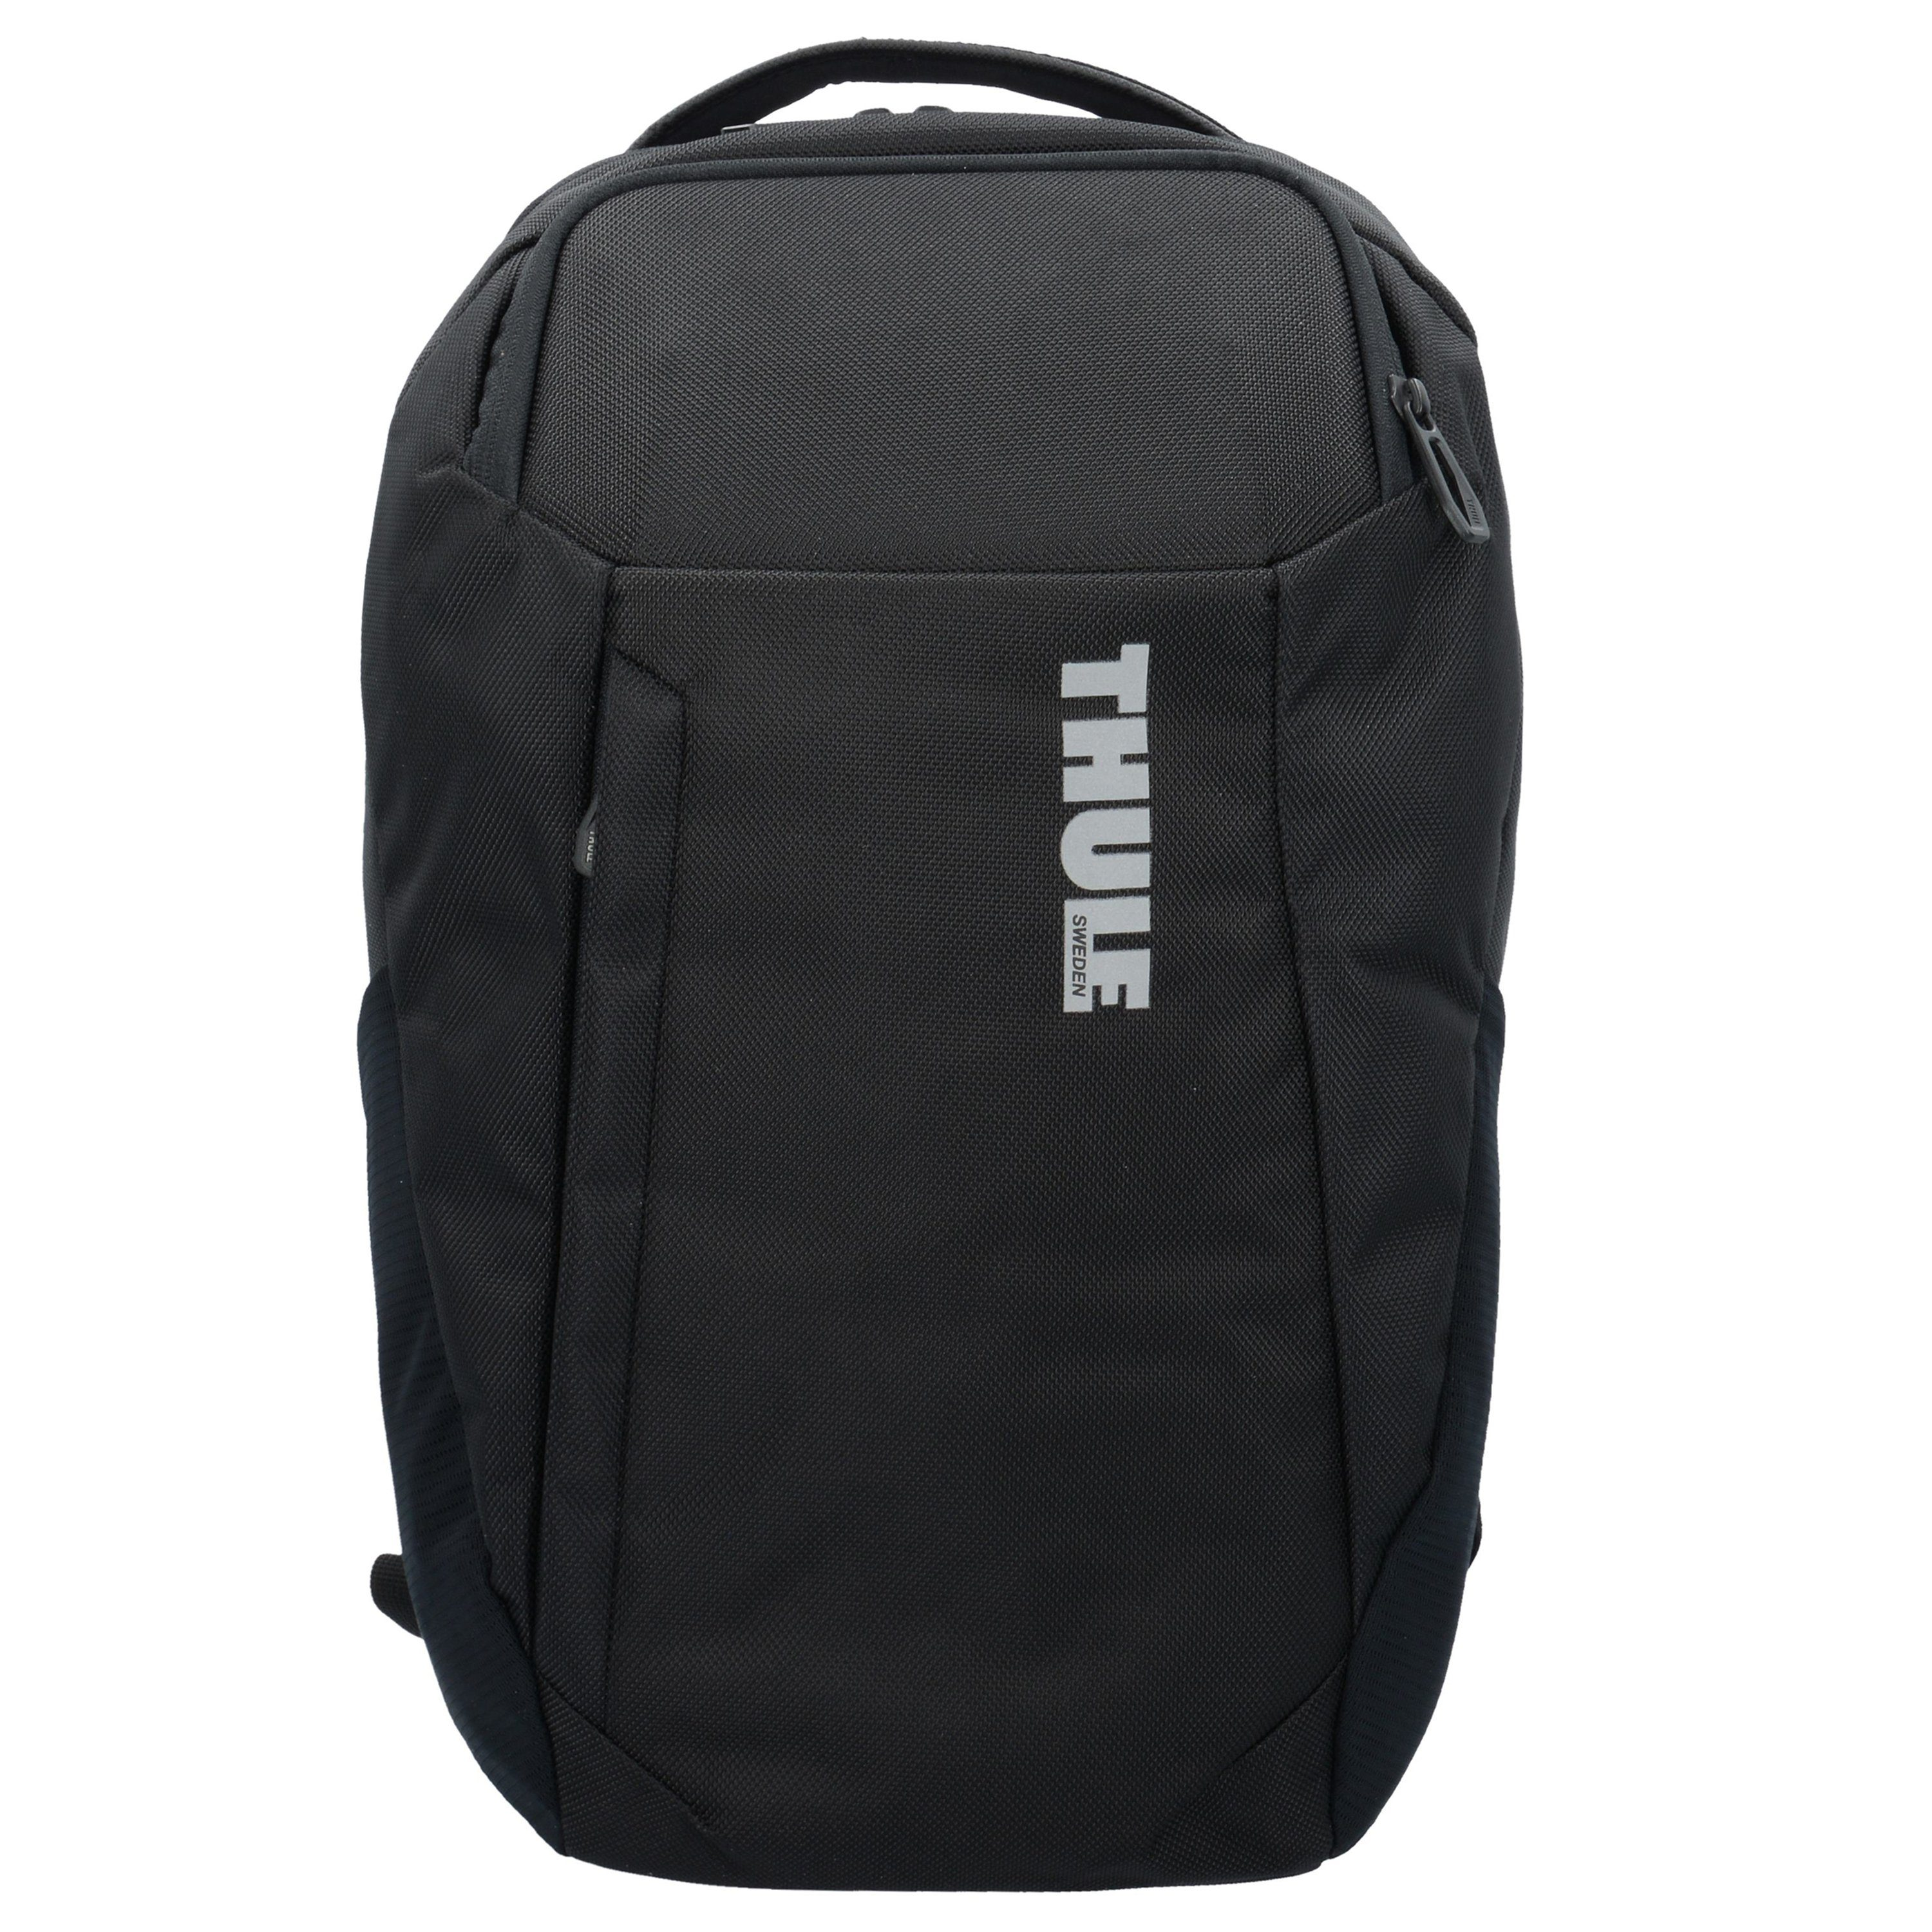 Thule Accent Business Rucksack 48 cm Laptopfach